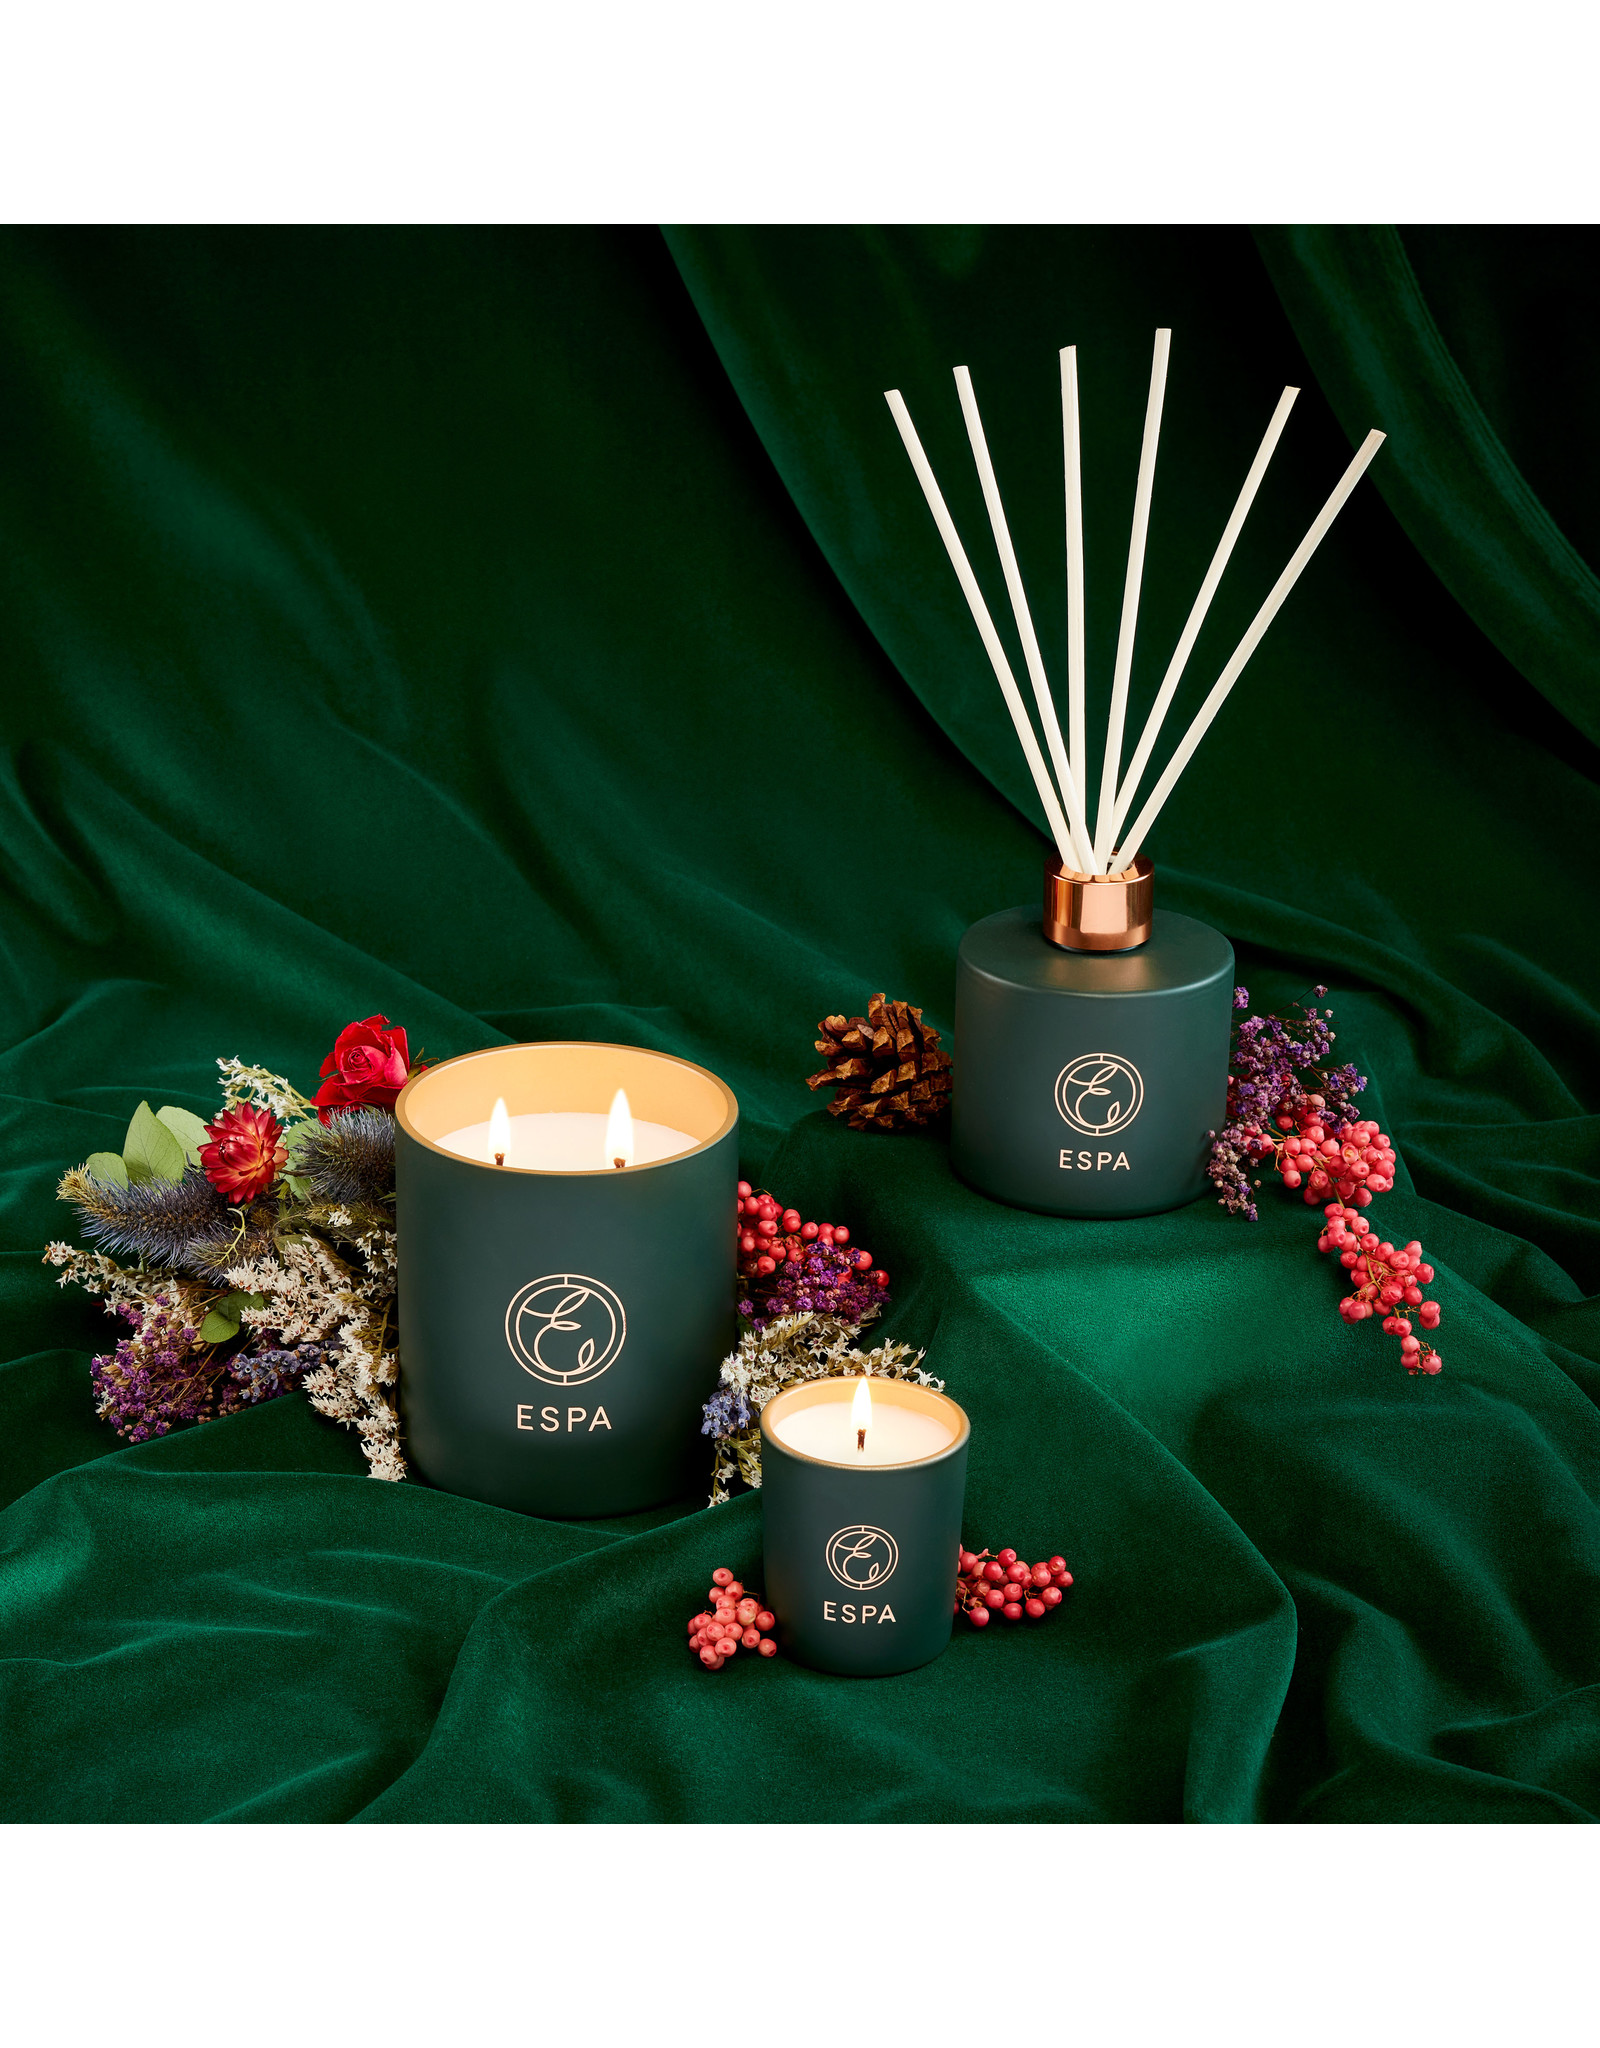 ESPA Winter Spice Deluxe Candle, 410g